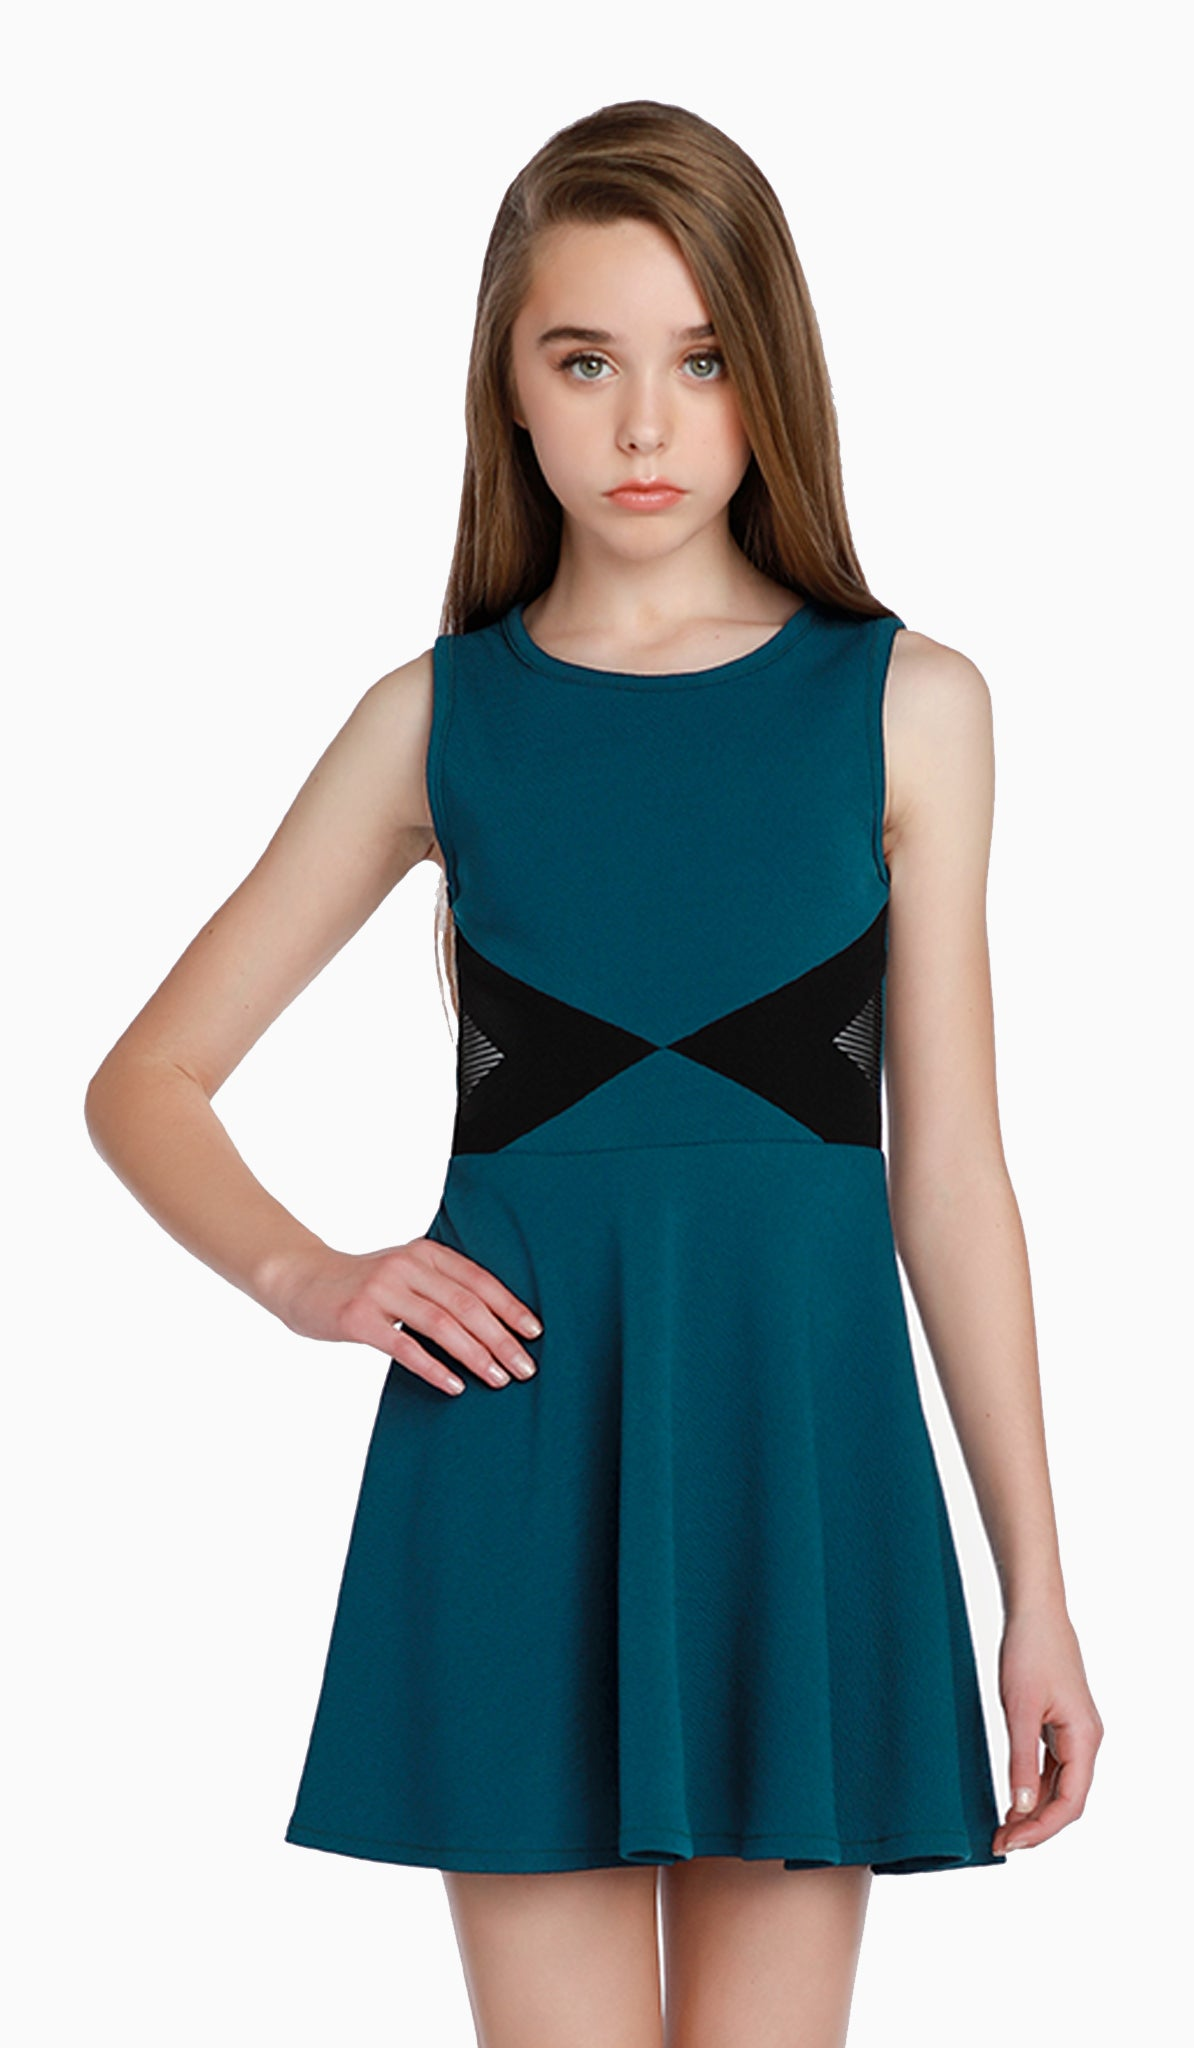 The Sally Miller Jada Dress | Teal textured stretch knit fit and flare dress with inserts at waist  | Luxury tween dresses & juniors dresses for all occasions and events